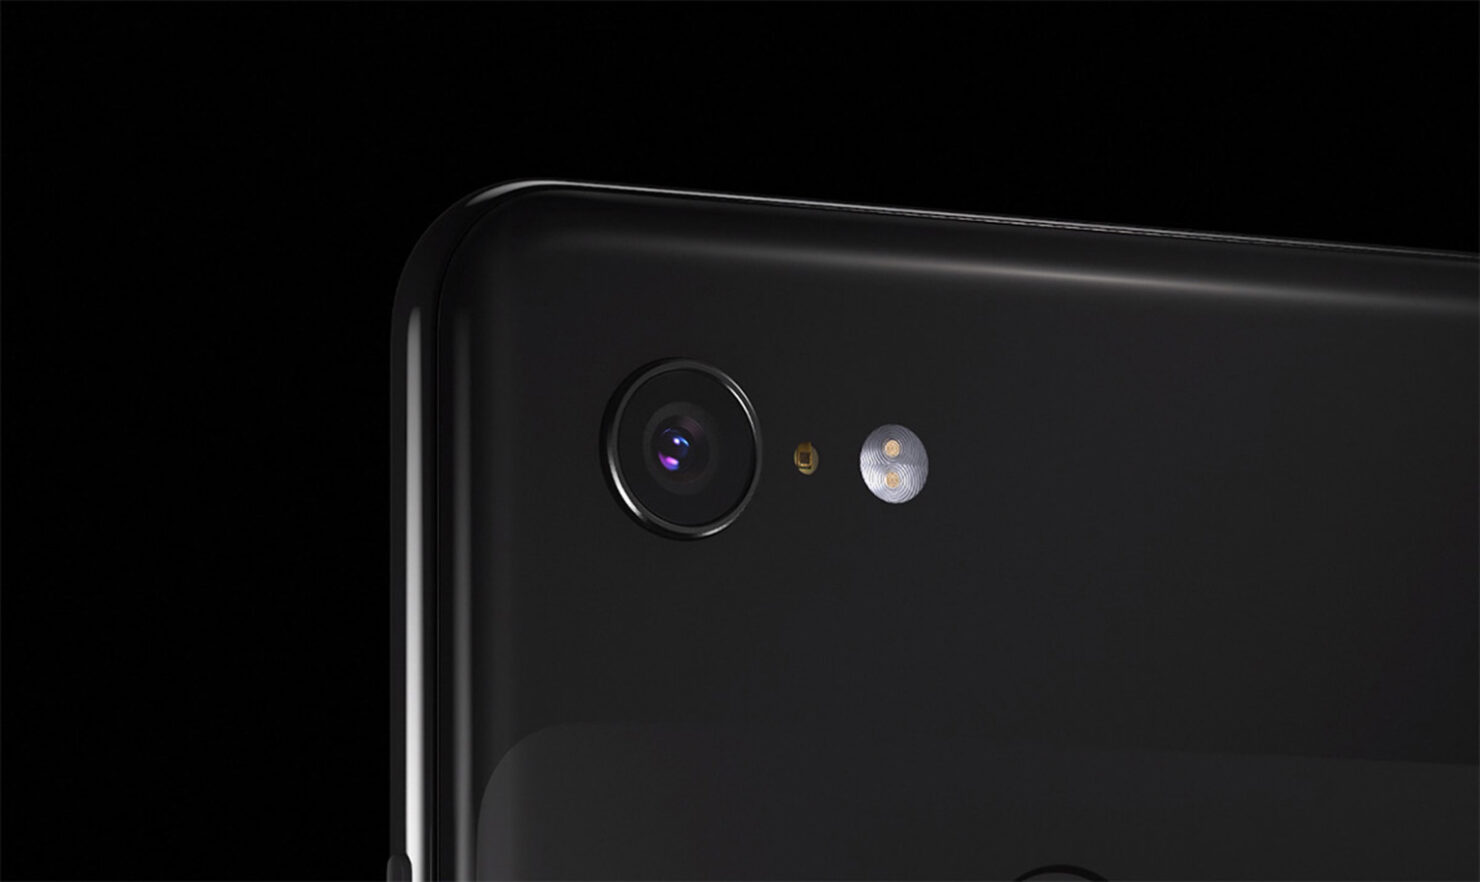 Best Buy is offering an amazing discount on Pixel 3 and Pixel 3 XL